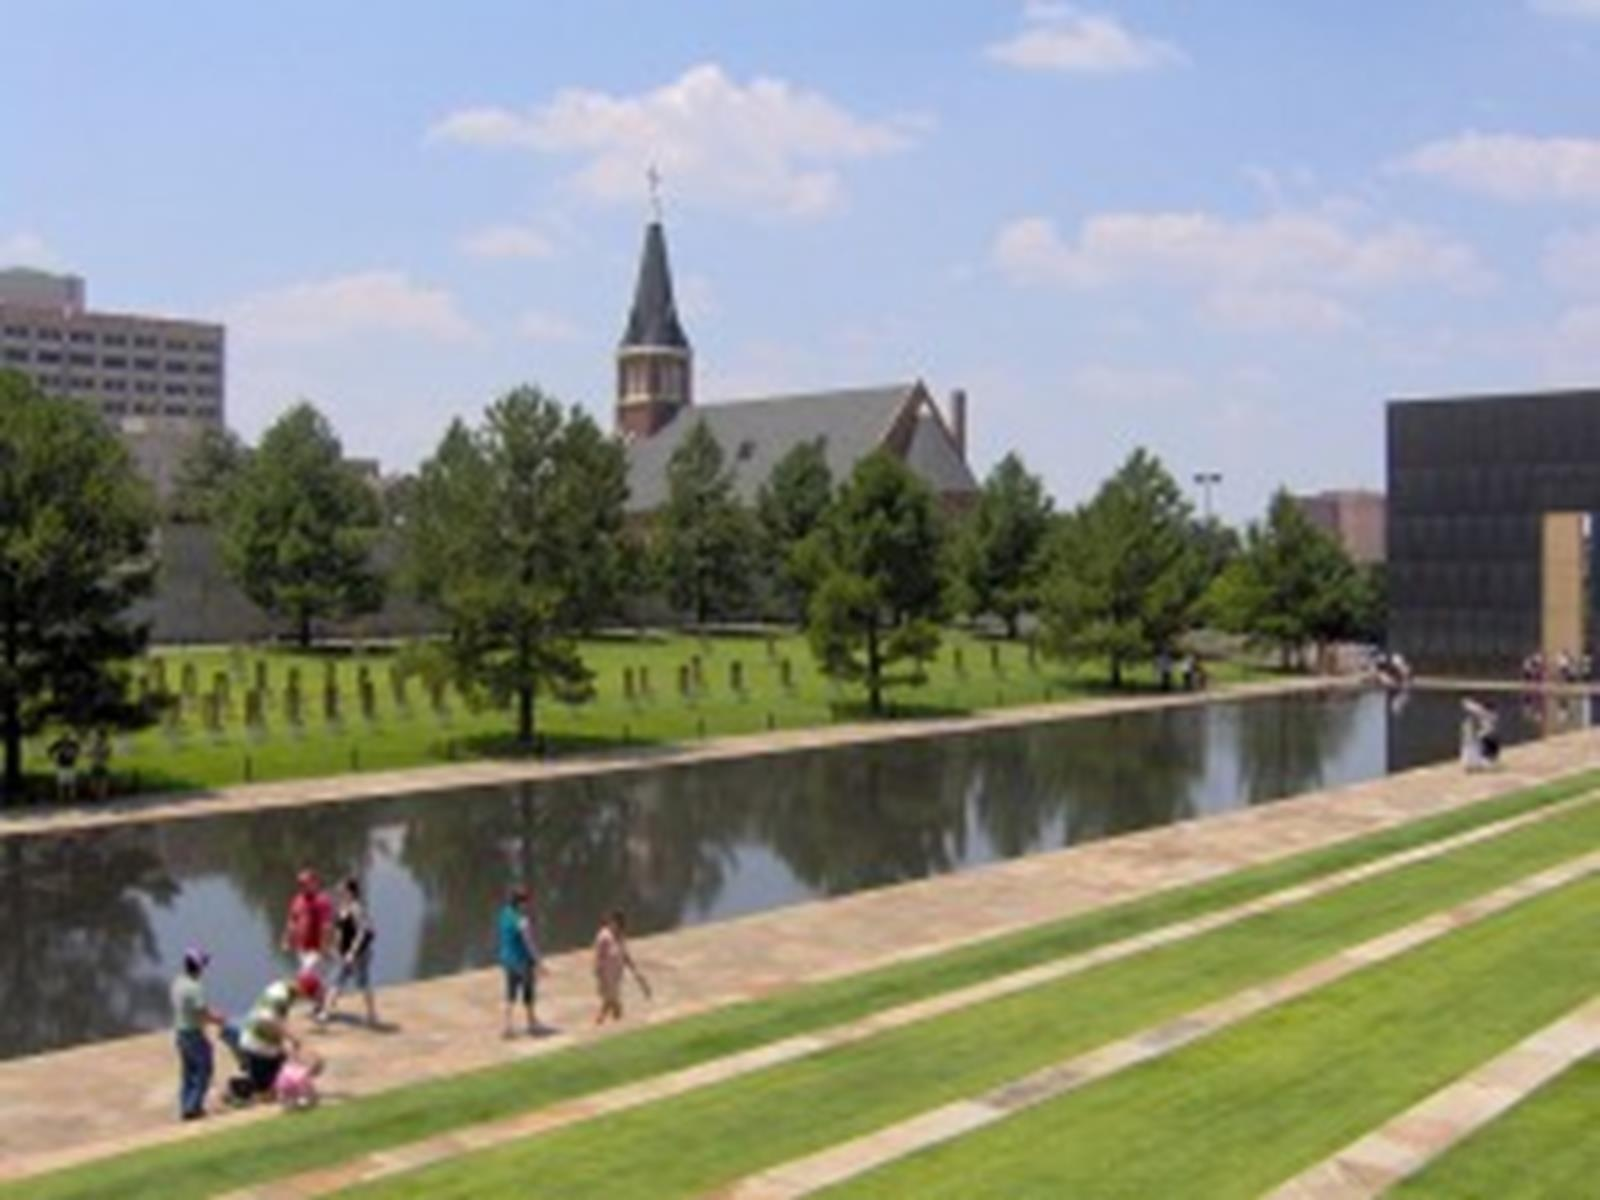 St. Joseph's Old Cathedral from the Oklahoma City National Memorial